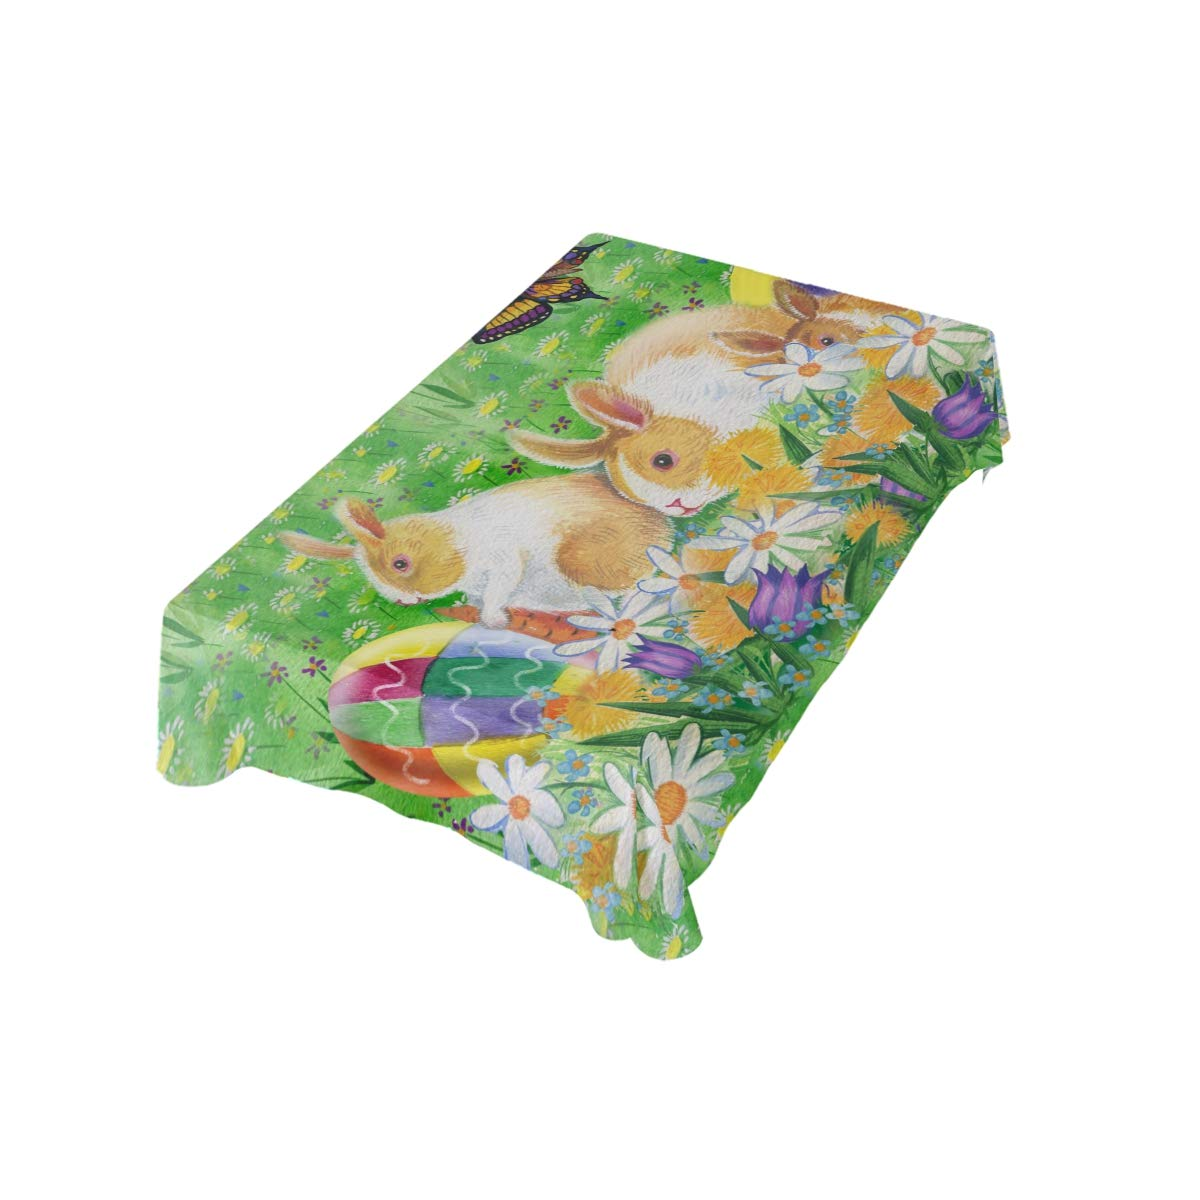 Naanle Easter Bunny Rabbit Spring Floral Butterfly Rectangle Tablecloth 60 L Easter Holiday Modern Table Linen Cloth Cover for Kitchen Dining Room Party Home Decor x 108 W